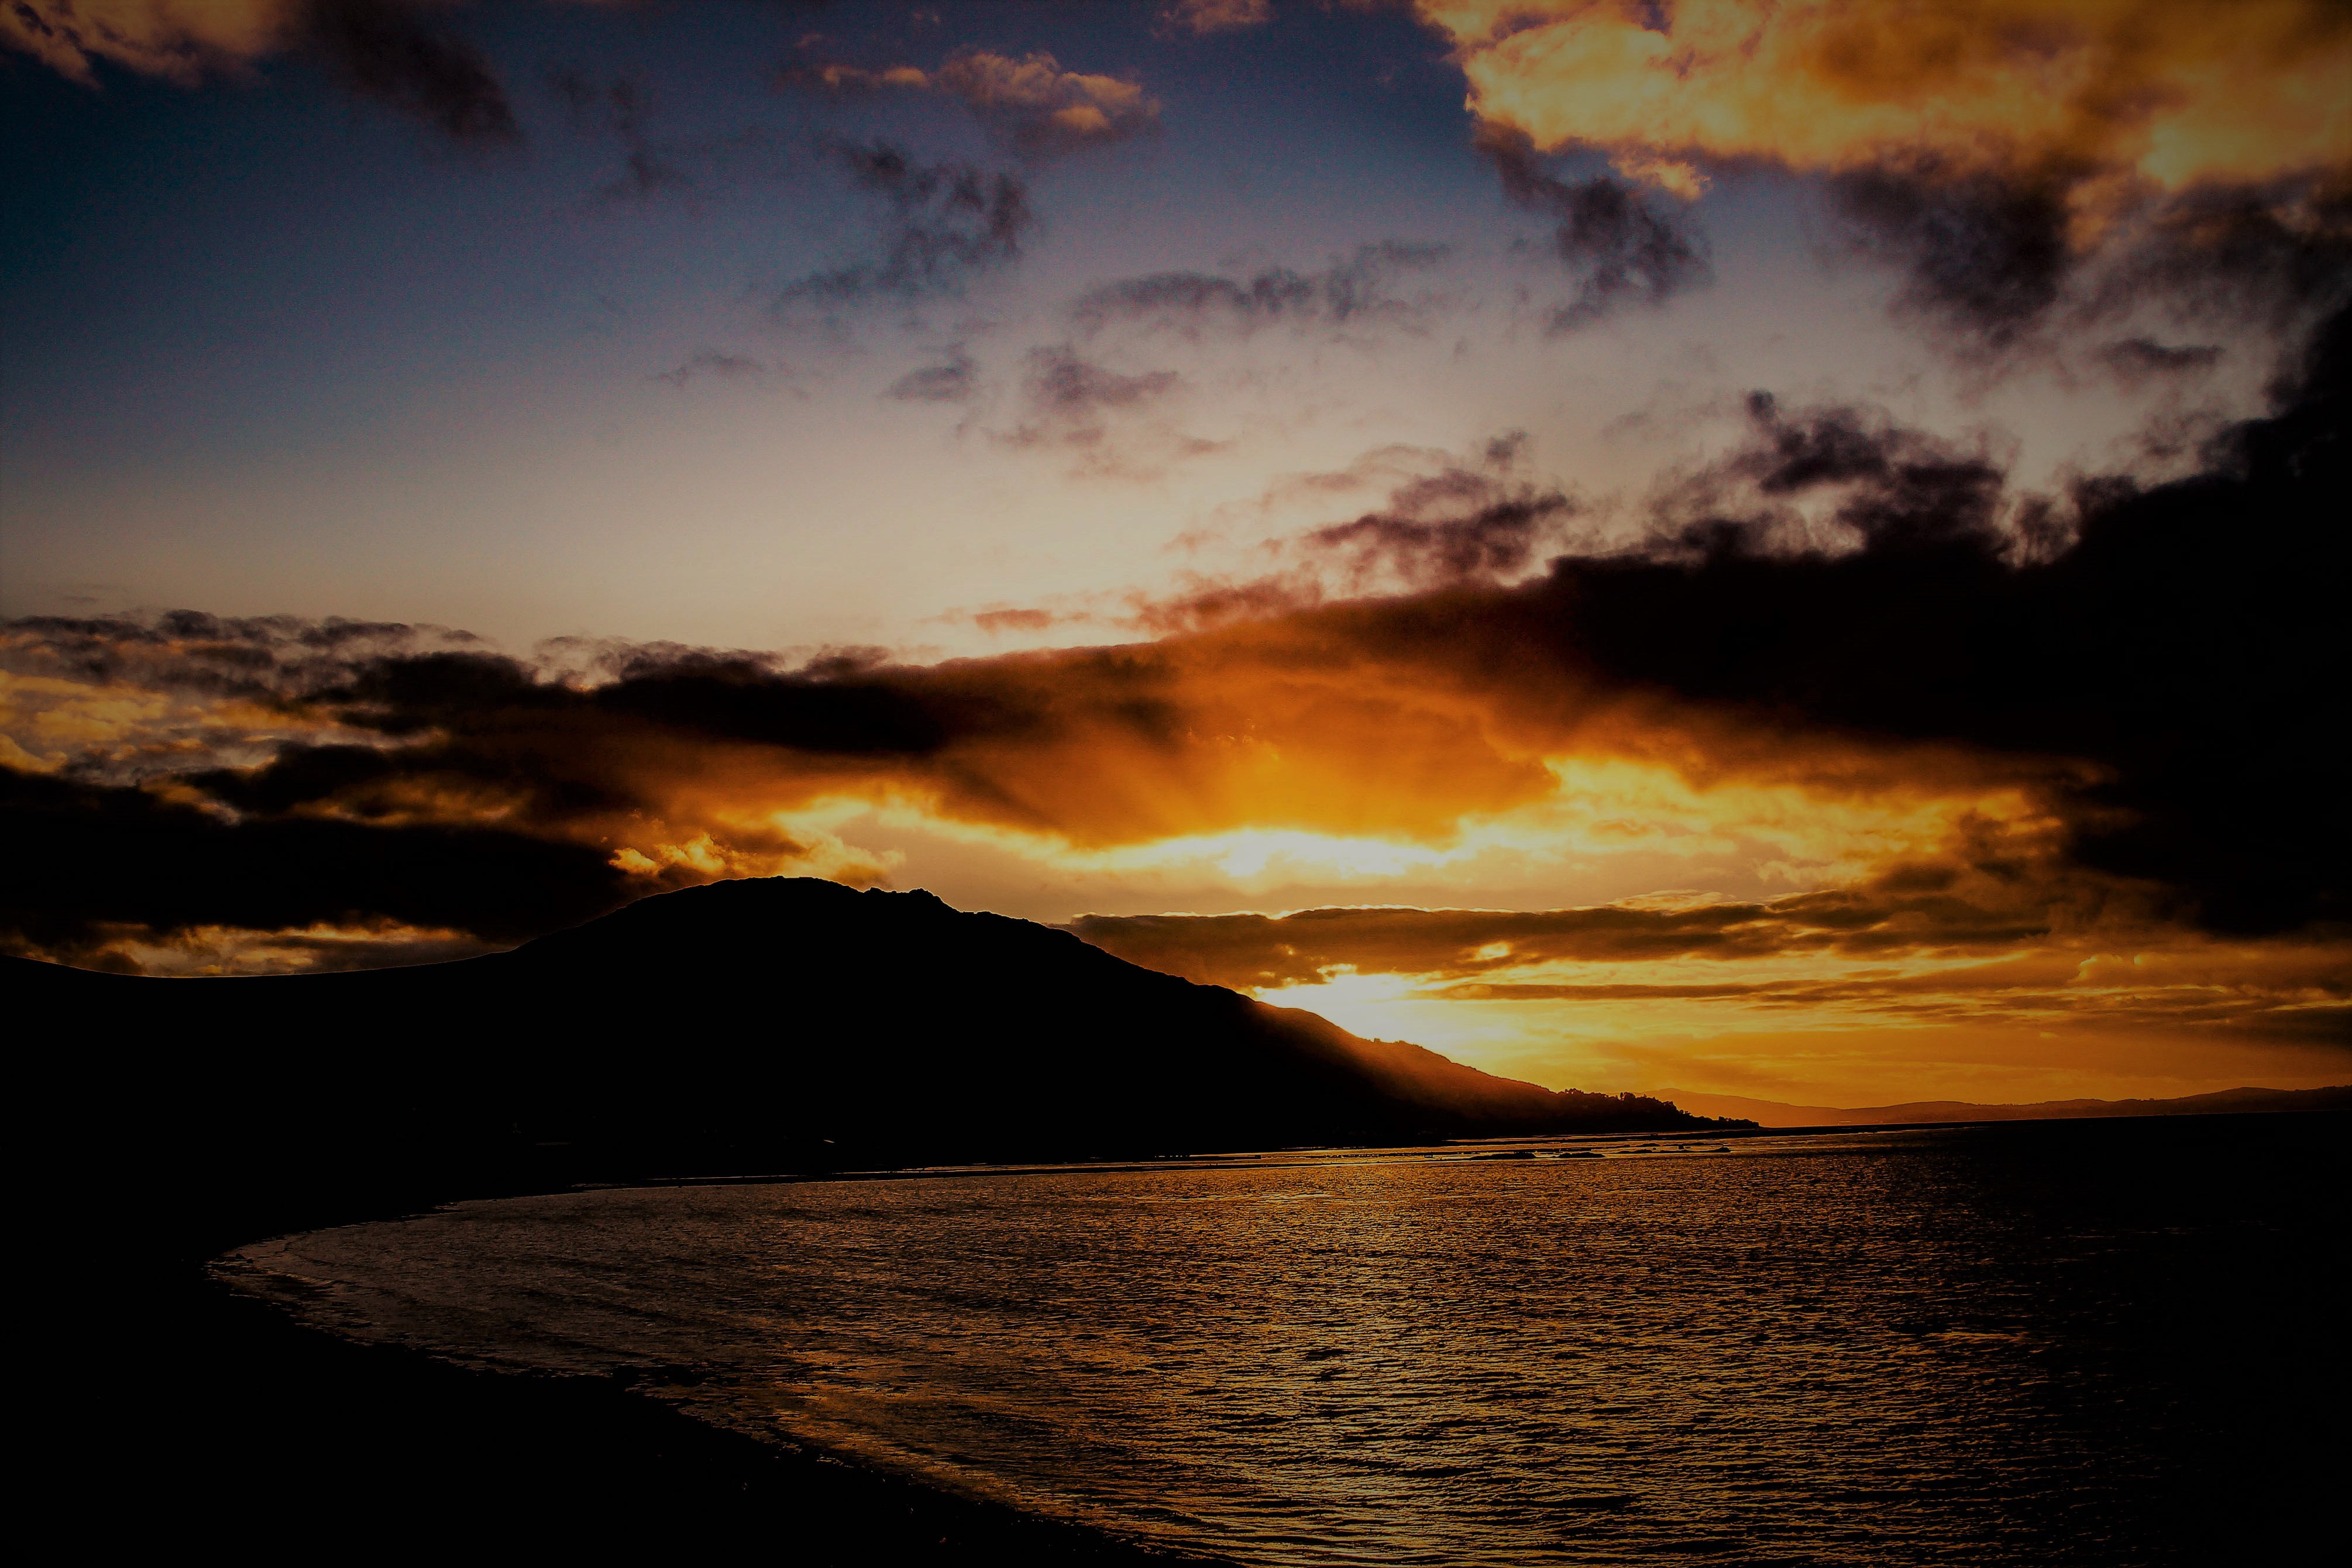 Sunset on Carlingford Lough from Hamills Pier